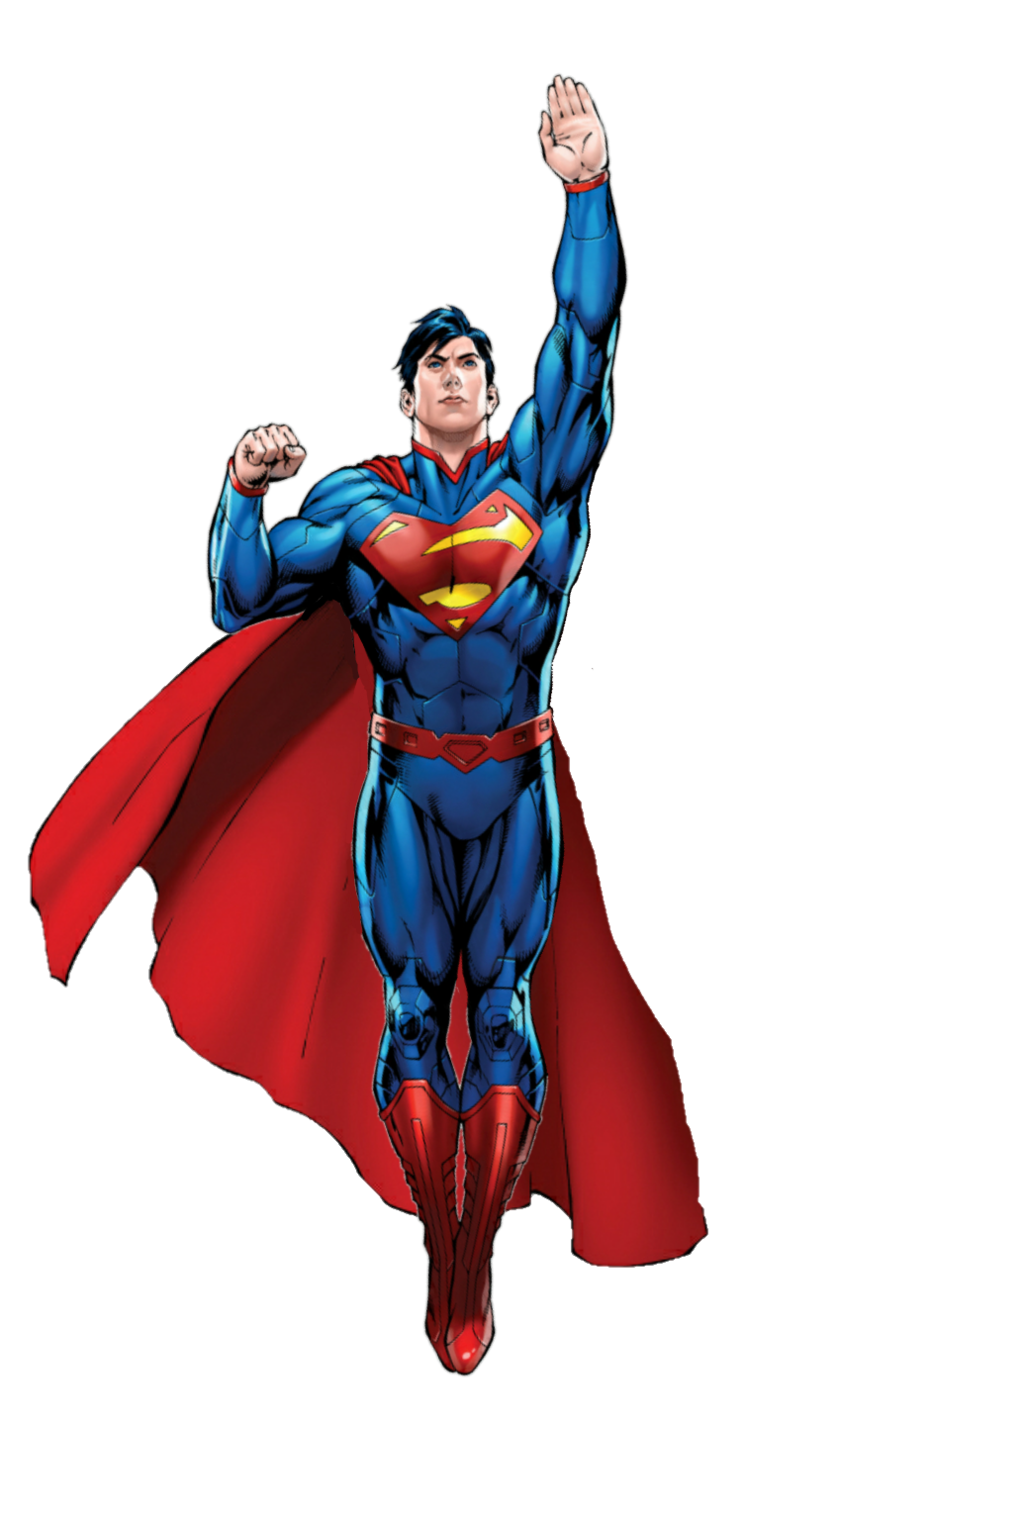 Super man clipart transparent jpg transparent library Superman PNG Pic | PNG Mart jpg transparent library